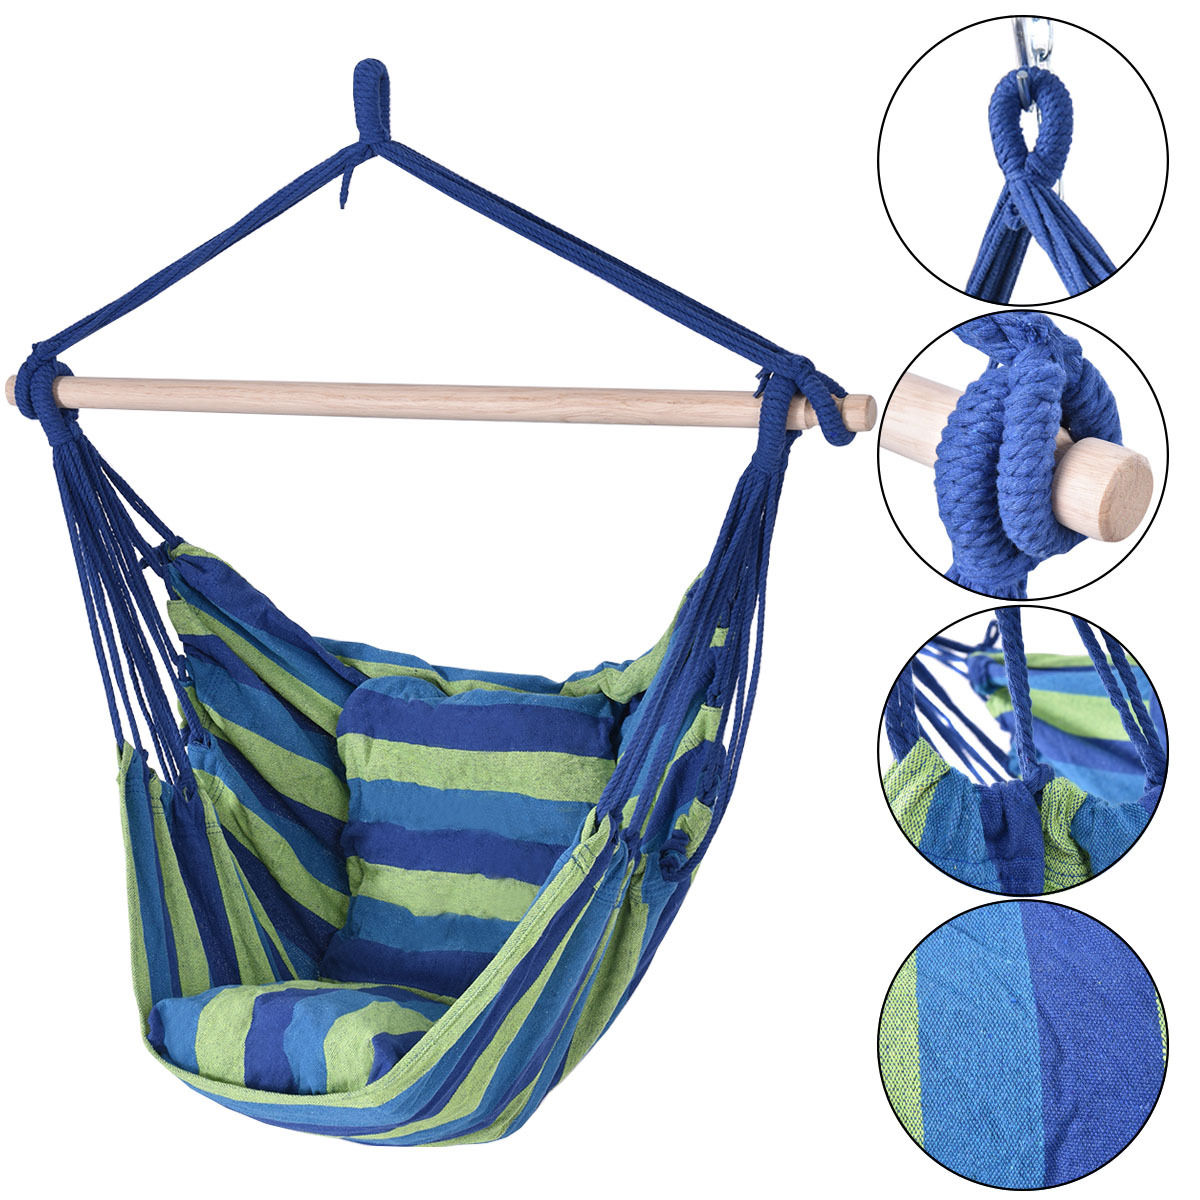 Costway Hammock Rope Chair Patio Porch Yard Tree Hanging Air Swing Outdoor (Blue And Green)